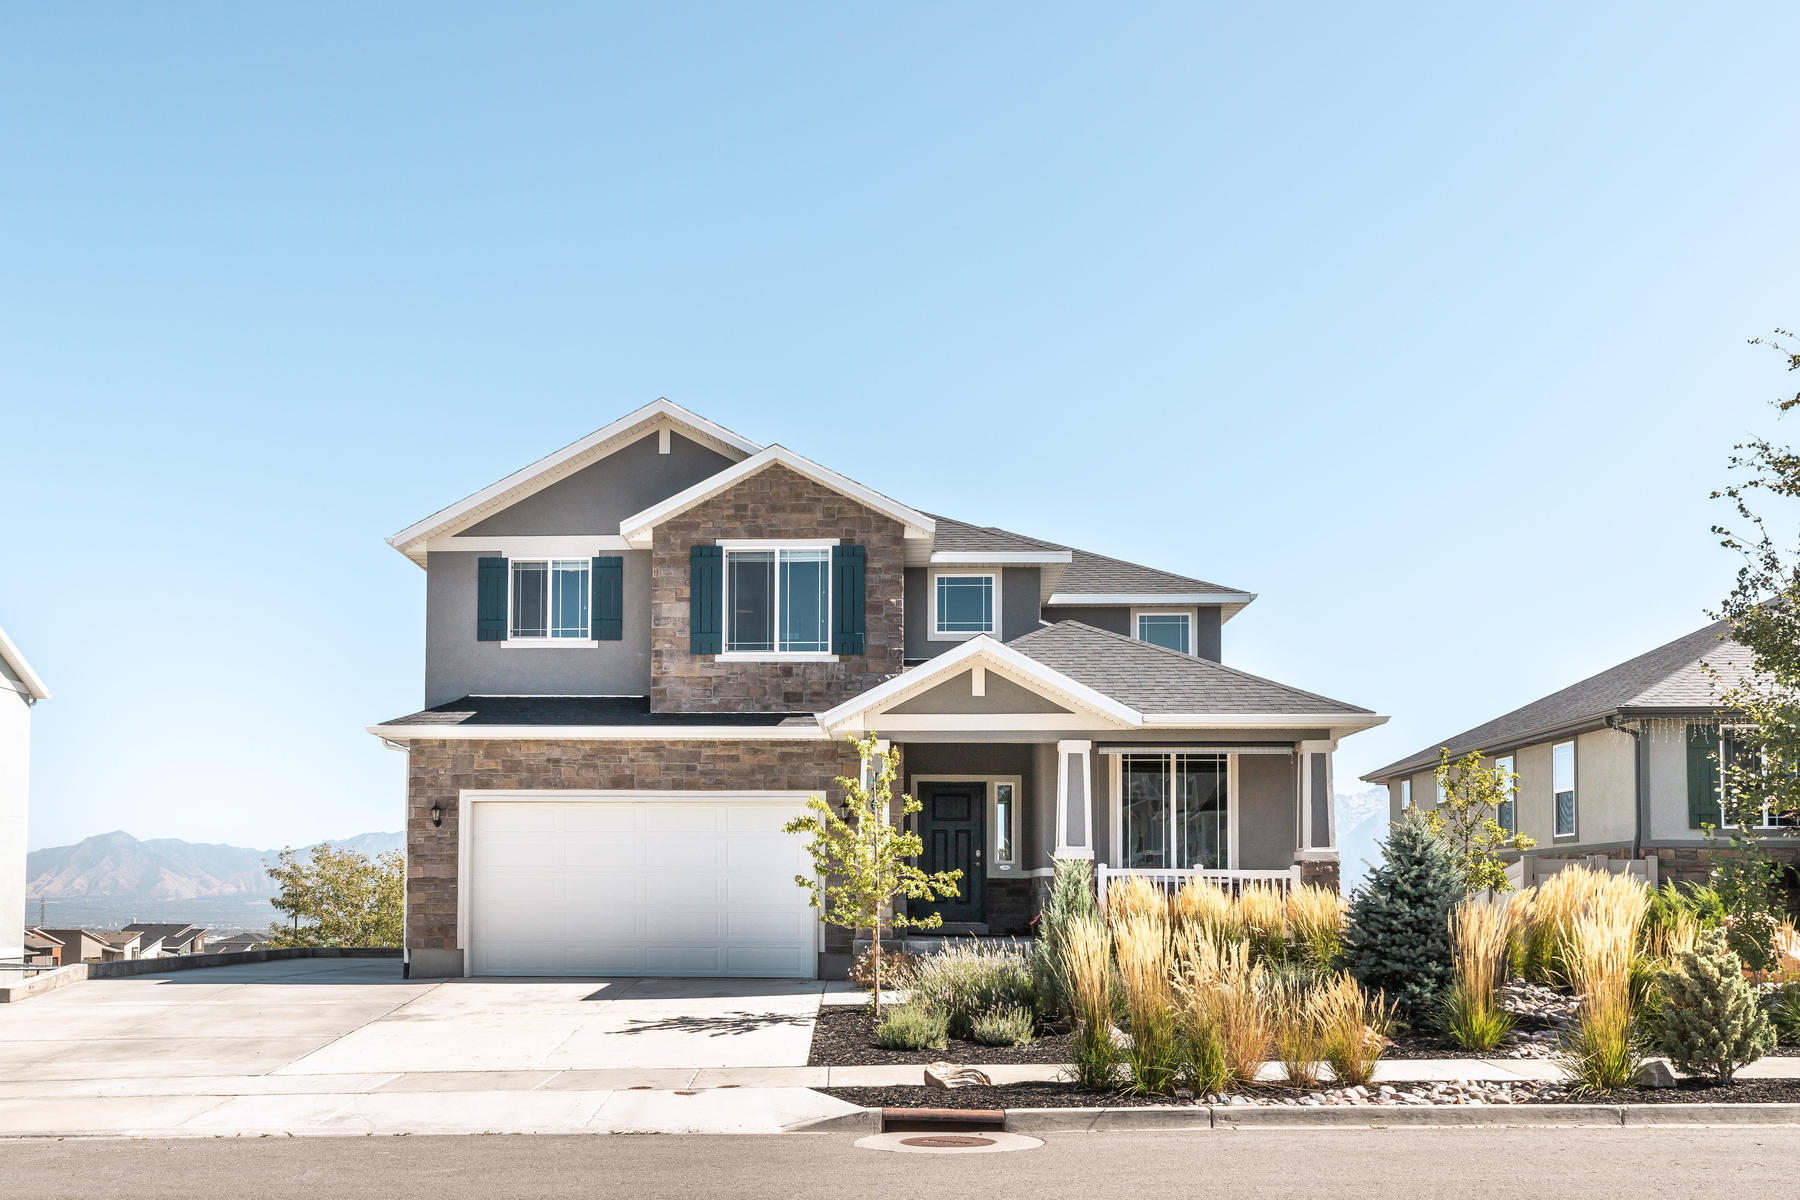 Single Family Homes for Sale at Practically Brand New 7907 S Beechgrove Drive, West Jordan, Utah 84081 United States